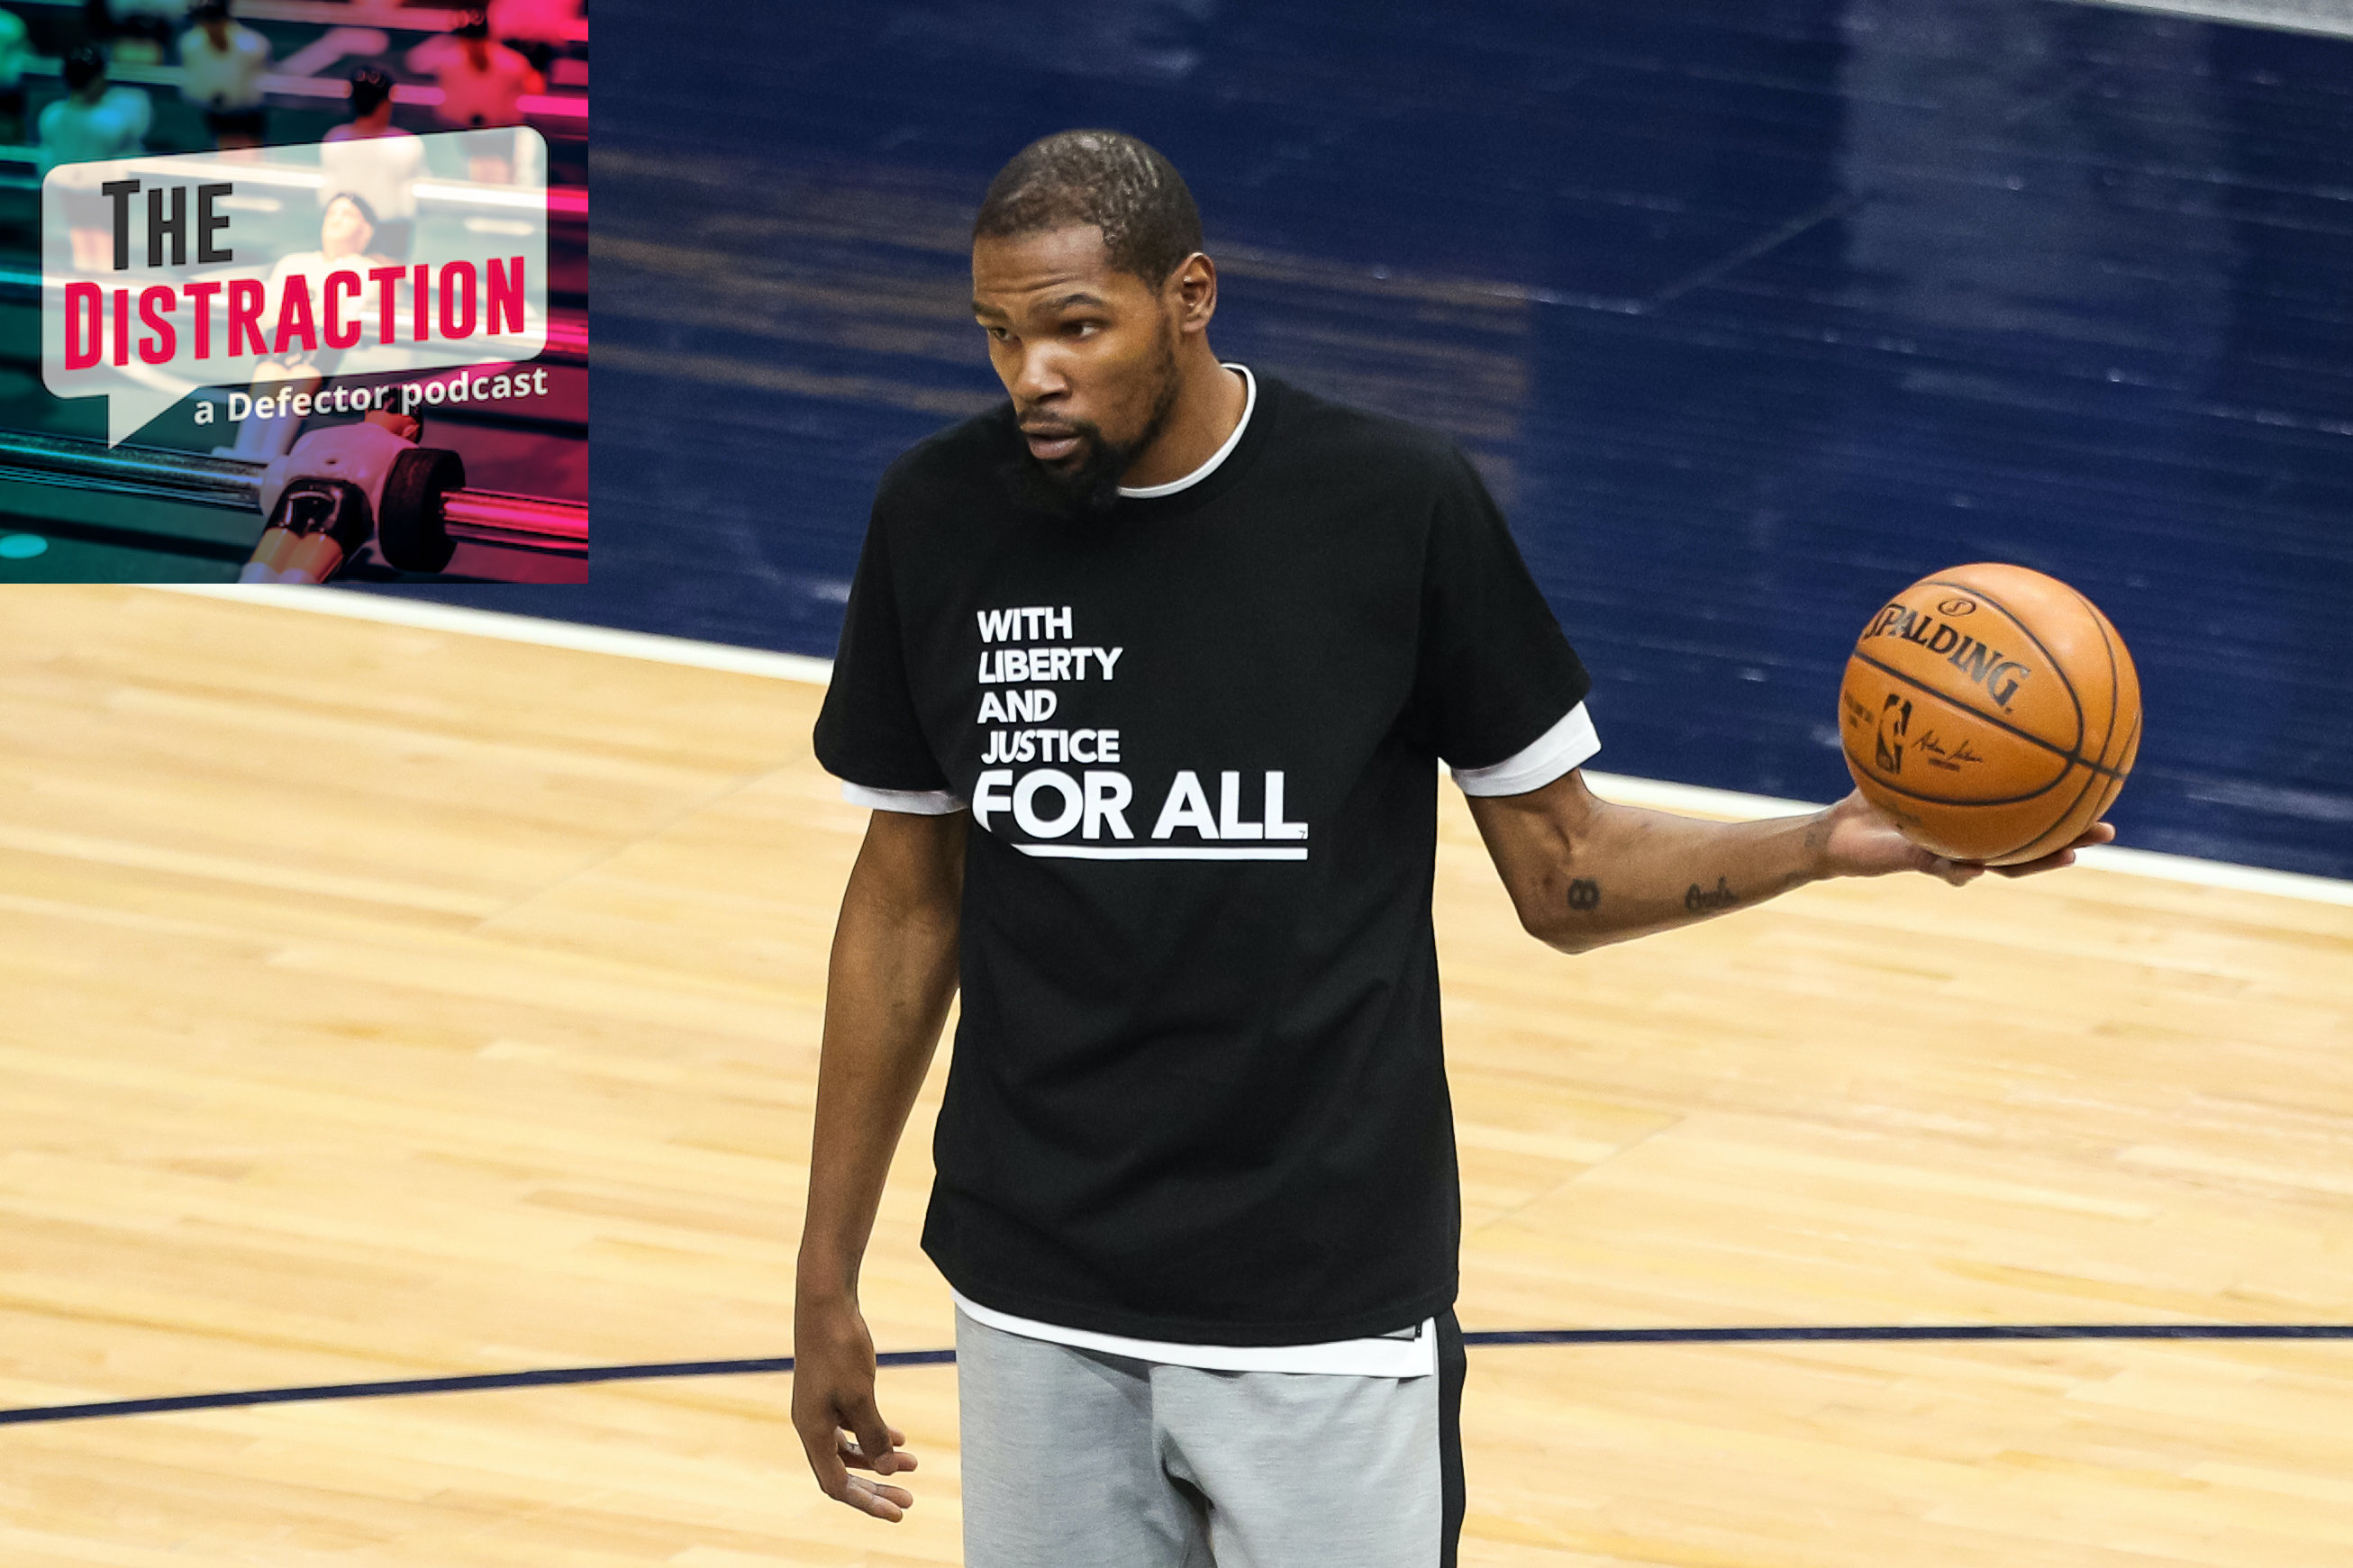 Kevin Durant warms up before Tuesday's game against the Timberwolves in a meaningful t-shirt.